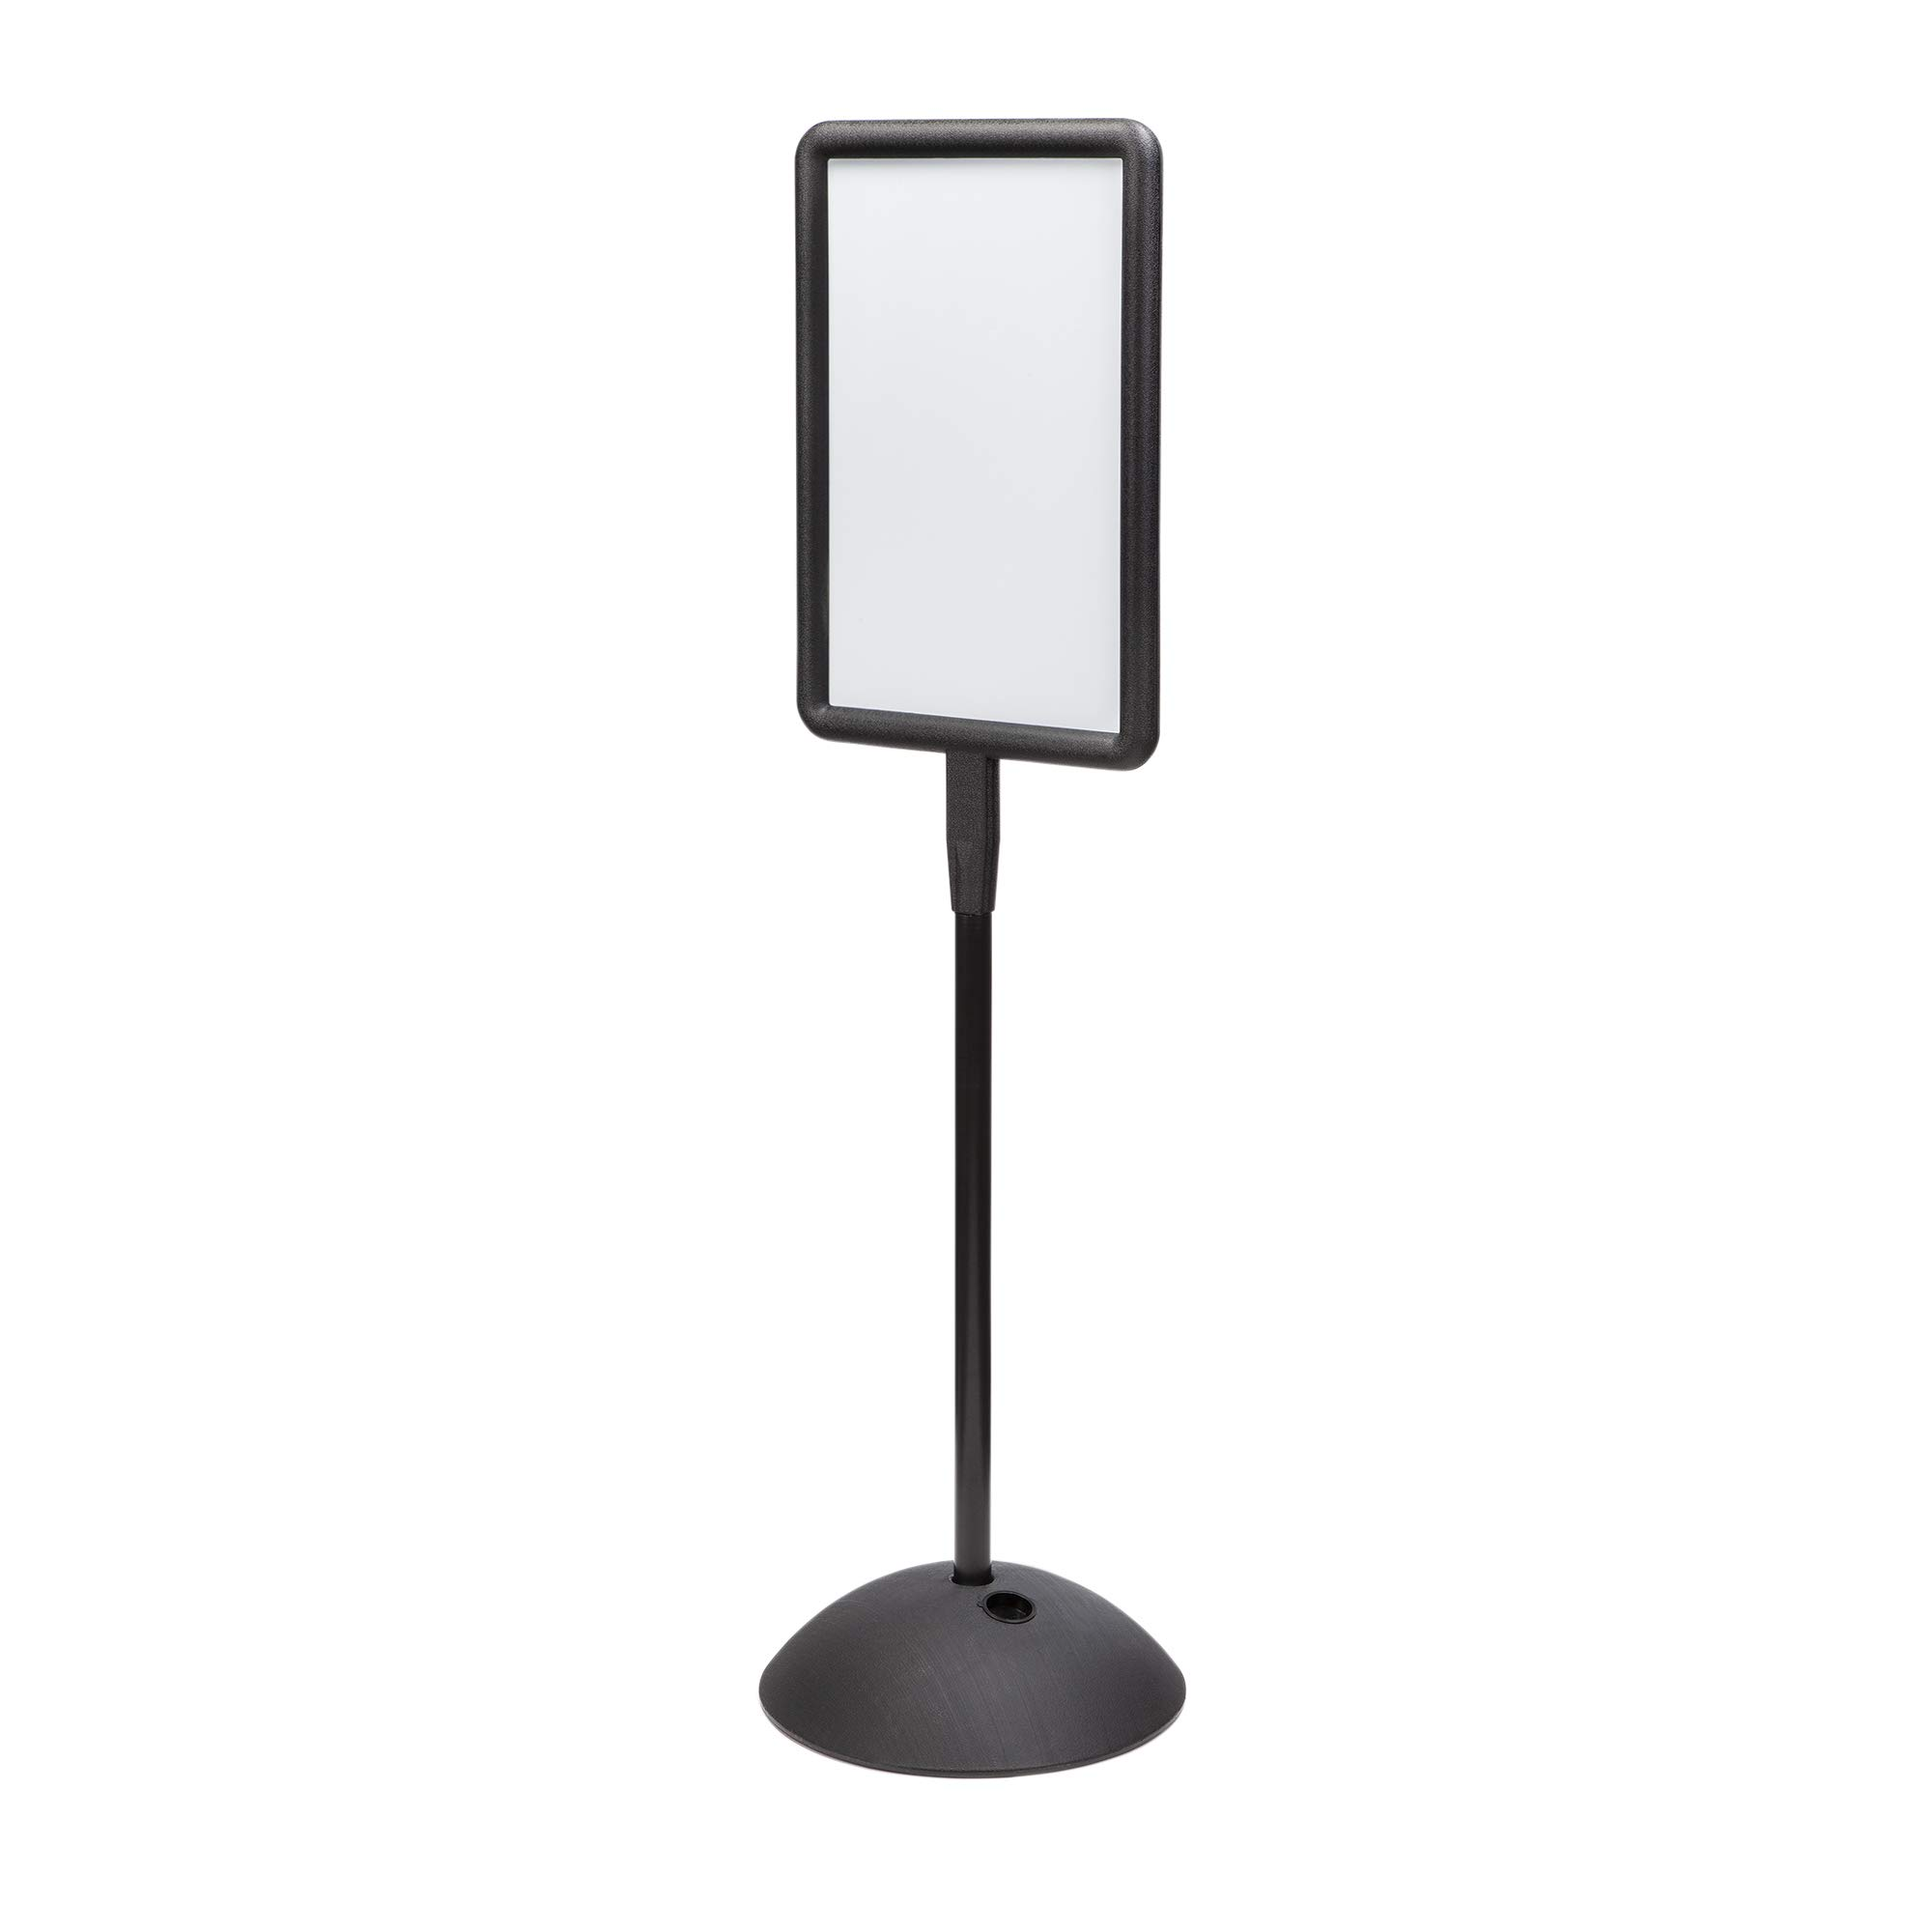 Safco Products Write Way Rectangle Message Sign 4117BL, Black, Magnetic Dual-Sided Dry Erase Board, Indoor and Outdoor Use by Safco Products